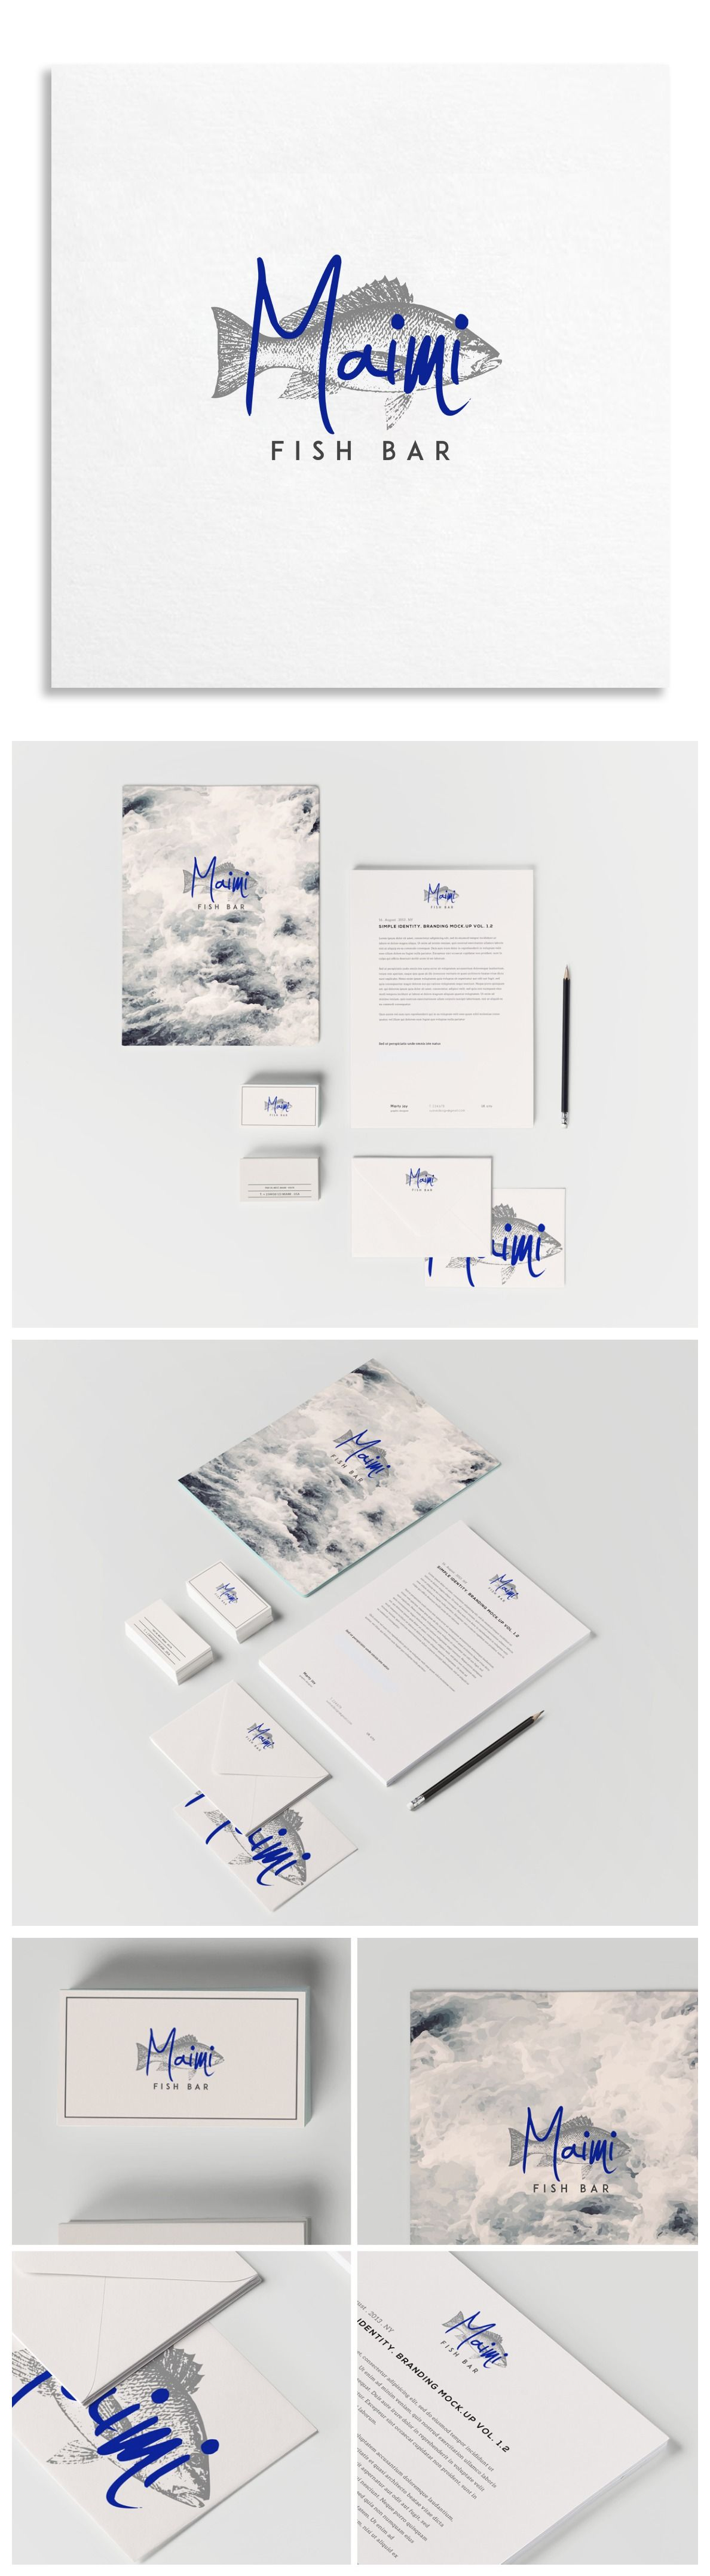 Maimi Fish Bar branding and #stationery design. Love the bold blue text over a simple grey illustration